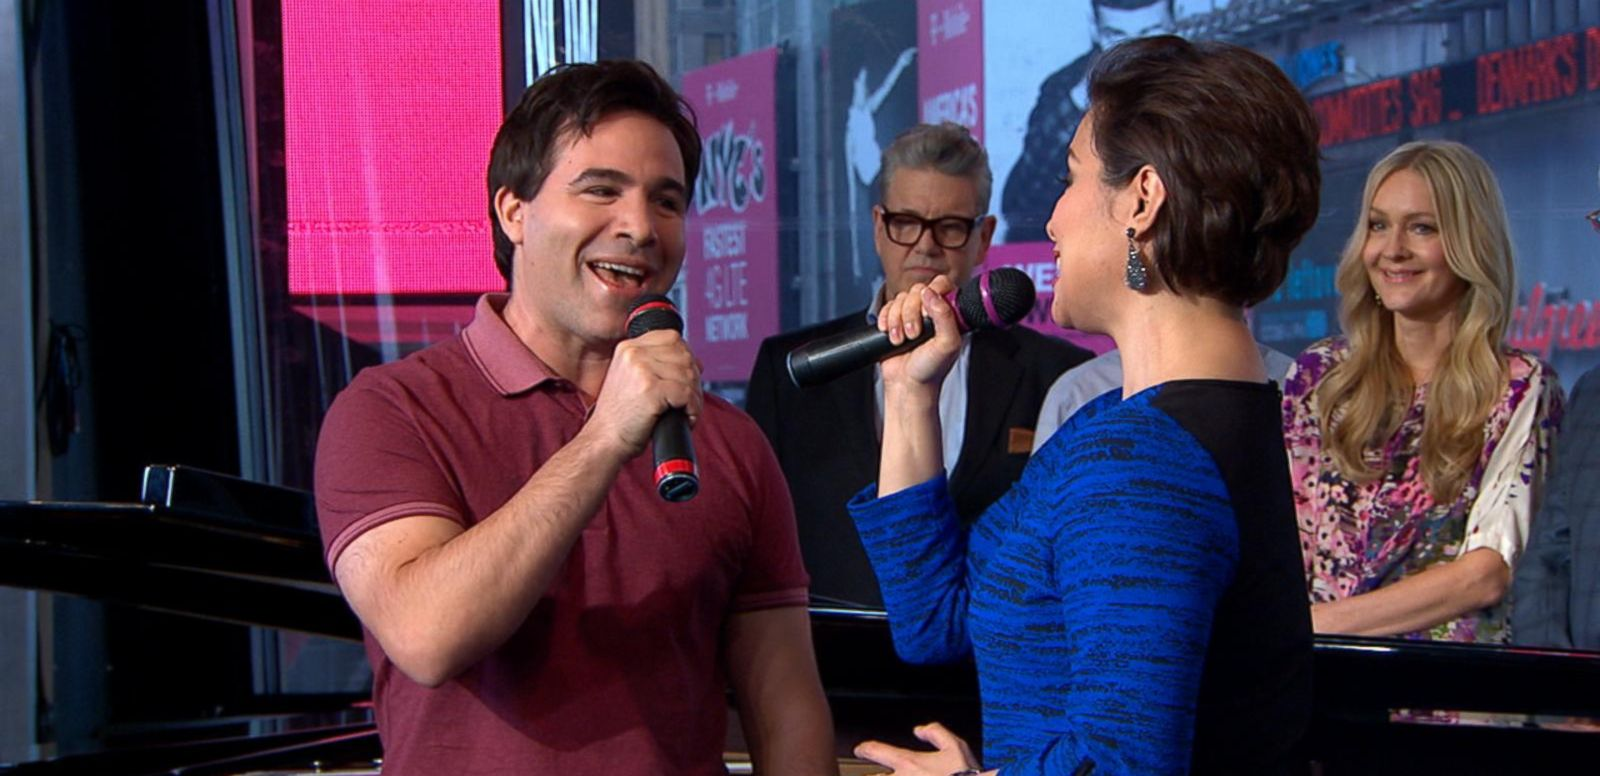 VIDEO: 'Aladdin' Cast Reunites for Iconic 'A Whole New World' Performance